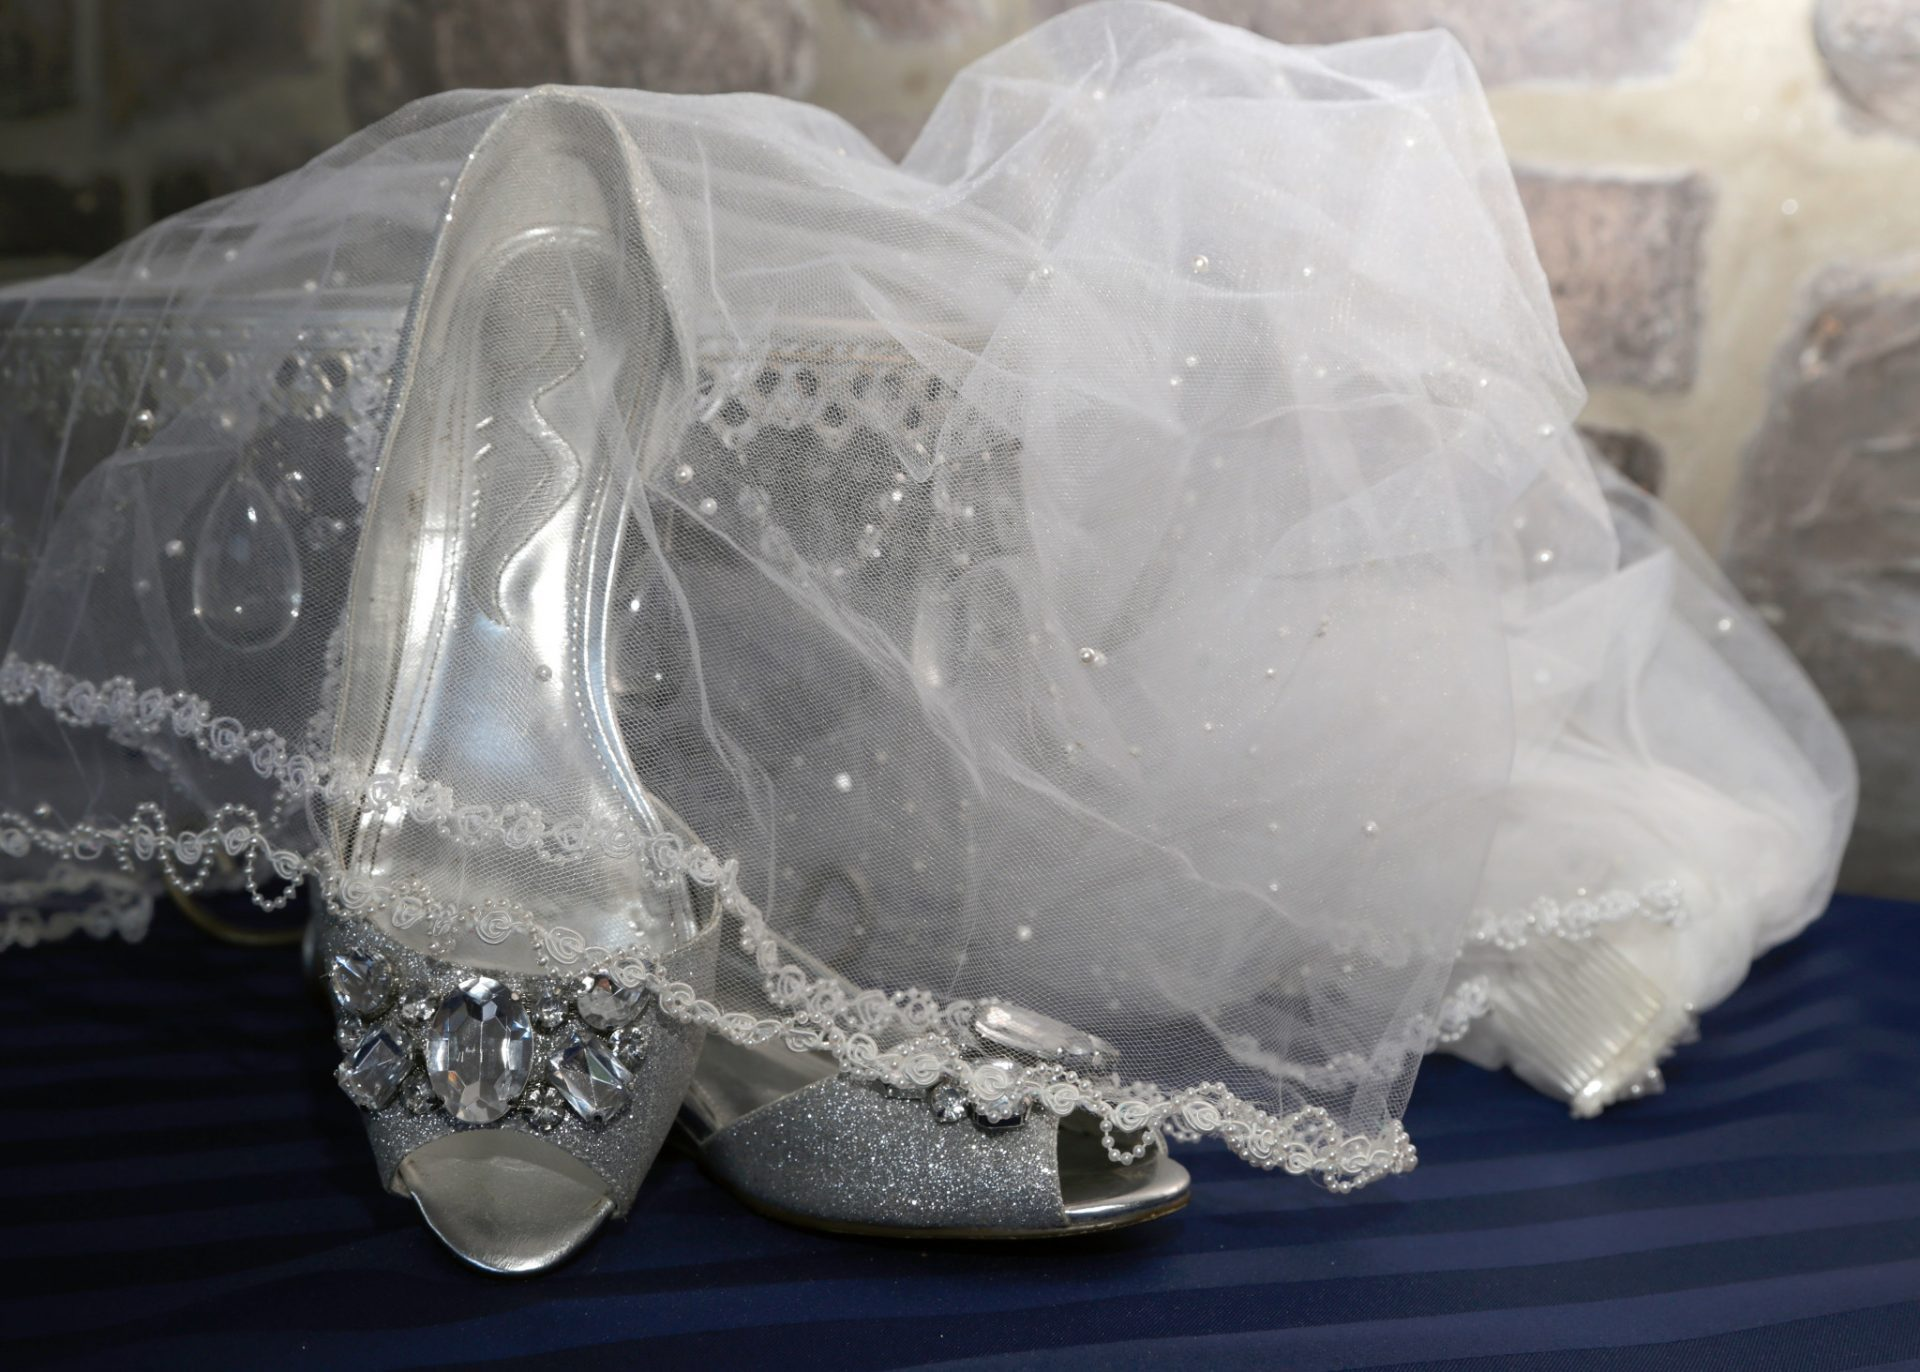 Kristin's veil and wedding shoes before her outdoor wedding